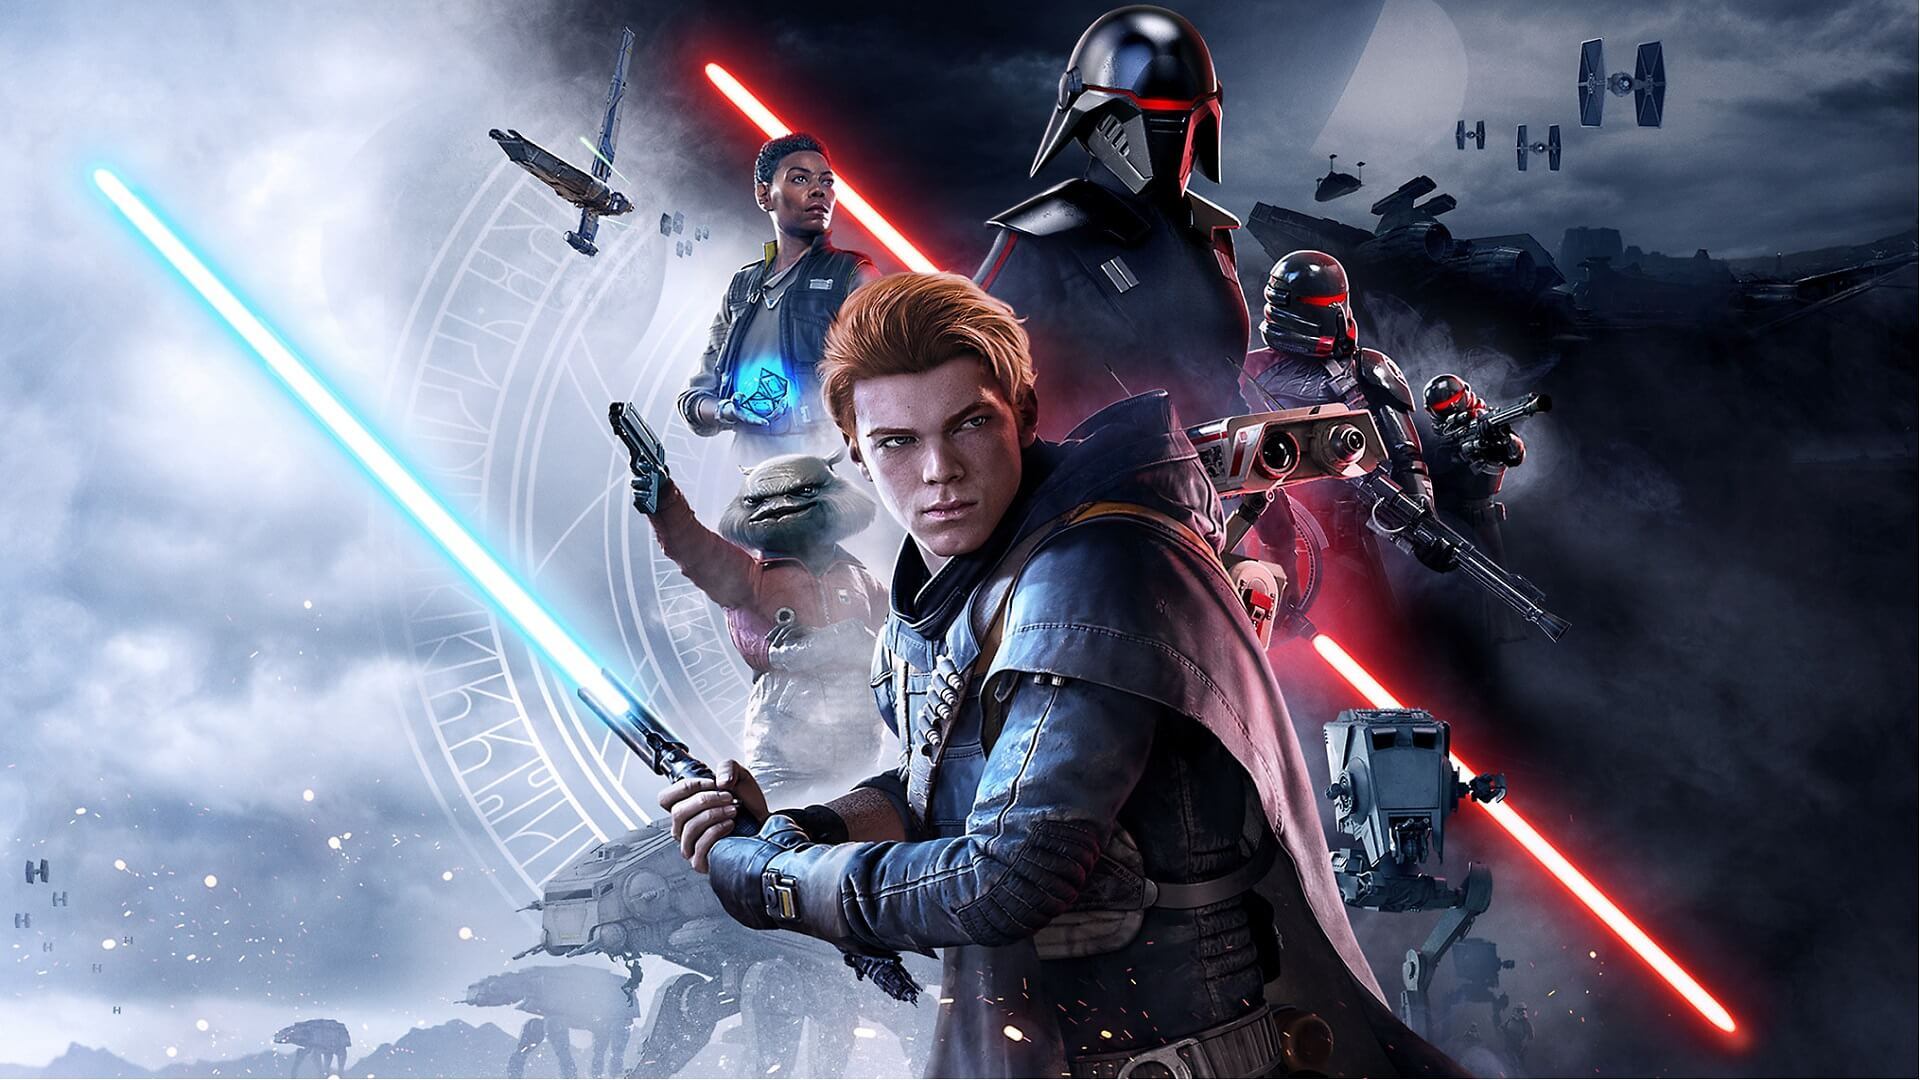 Star Wars Jedi: Fallen Order Preorder Bonus Now Available to Everyone